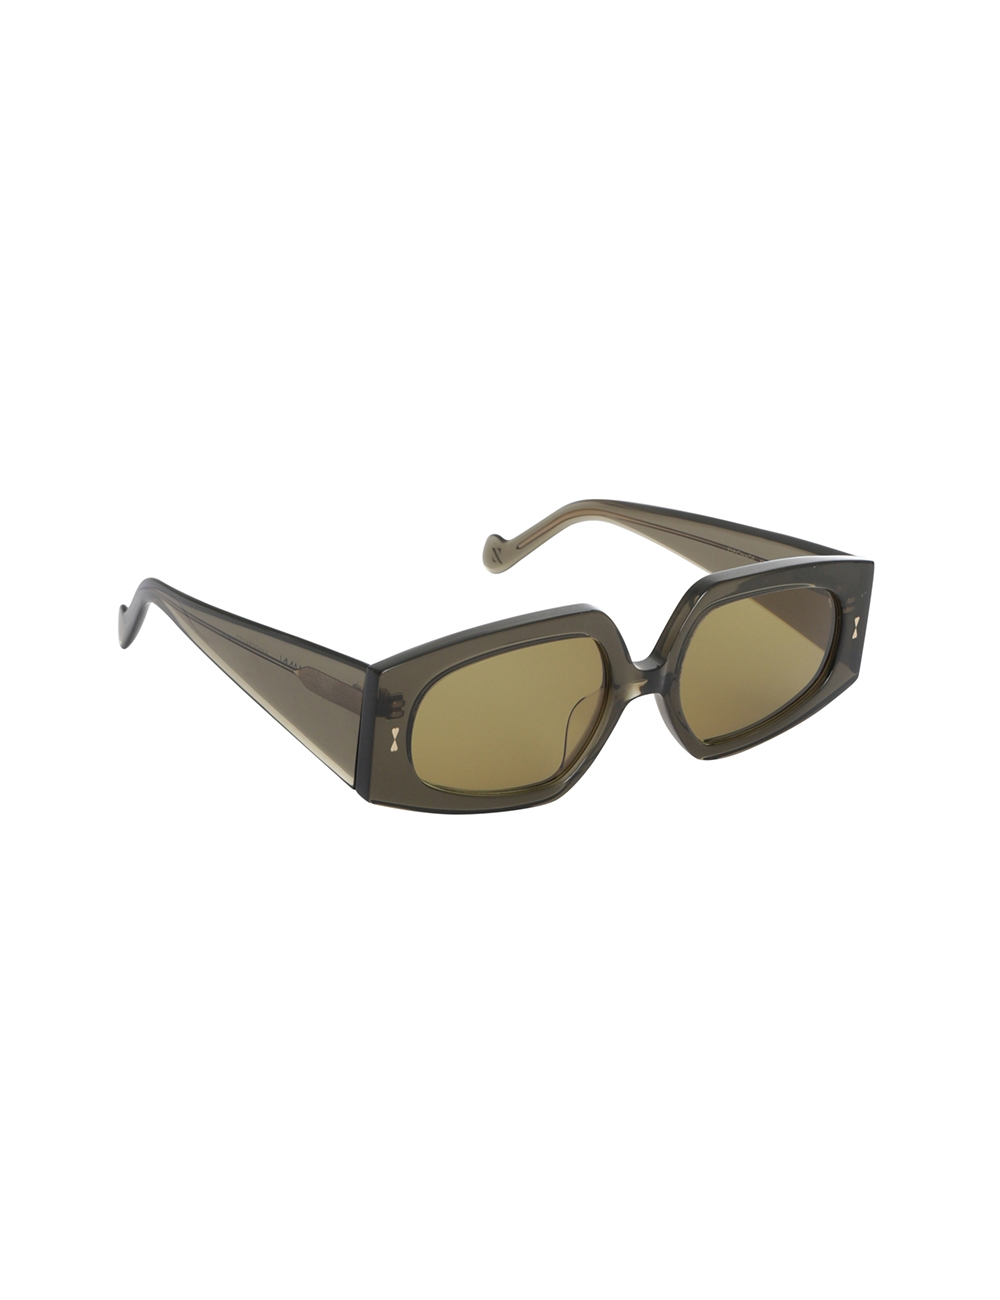 Espionage Squared Sunglasses